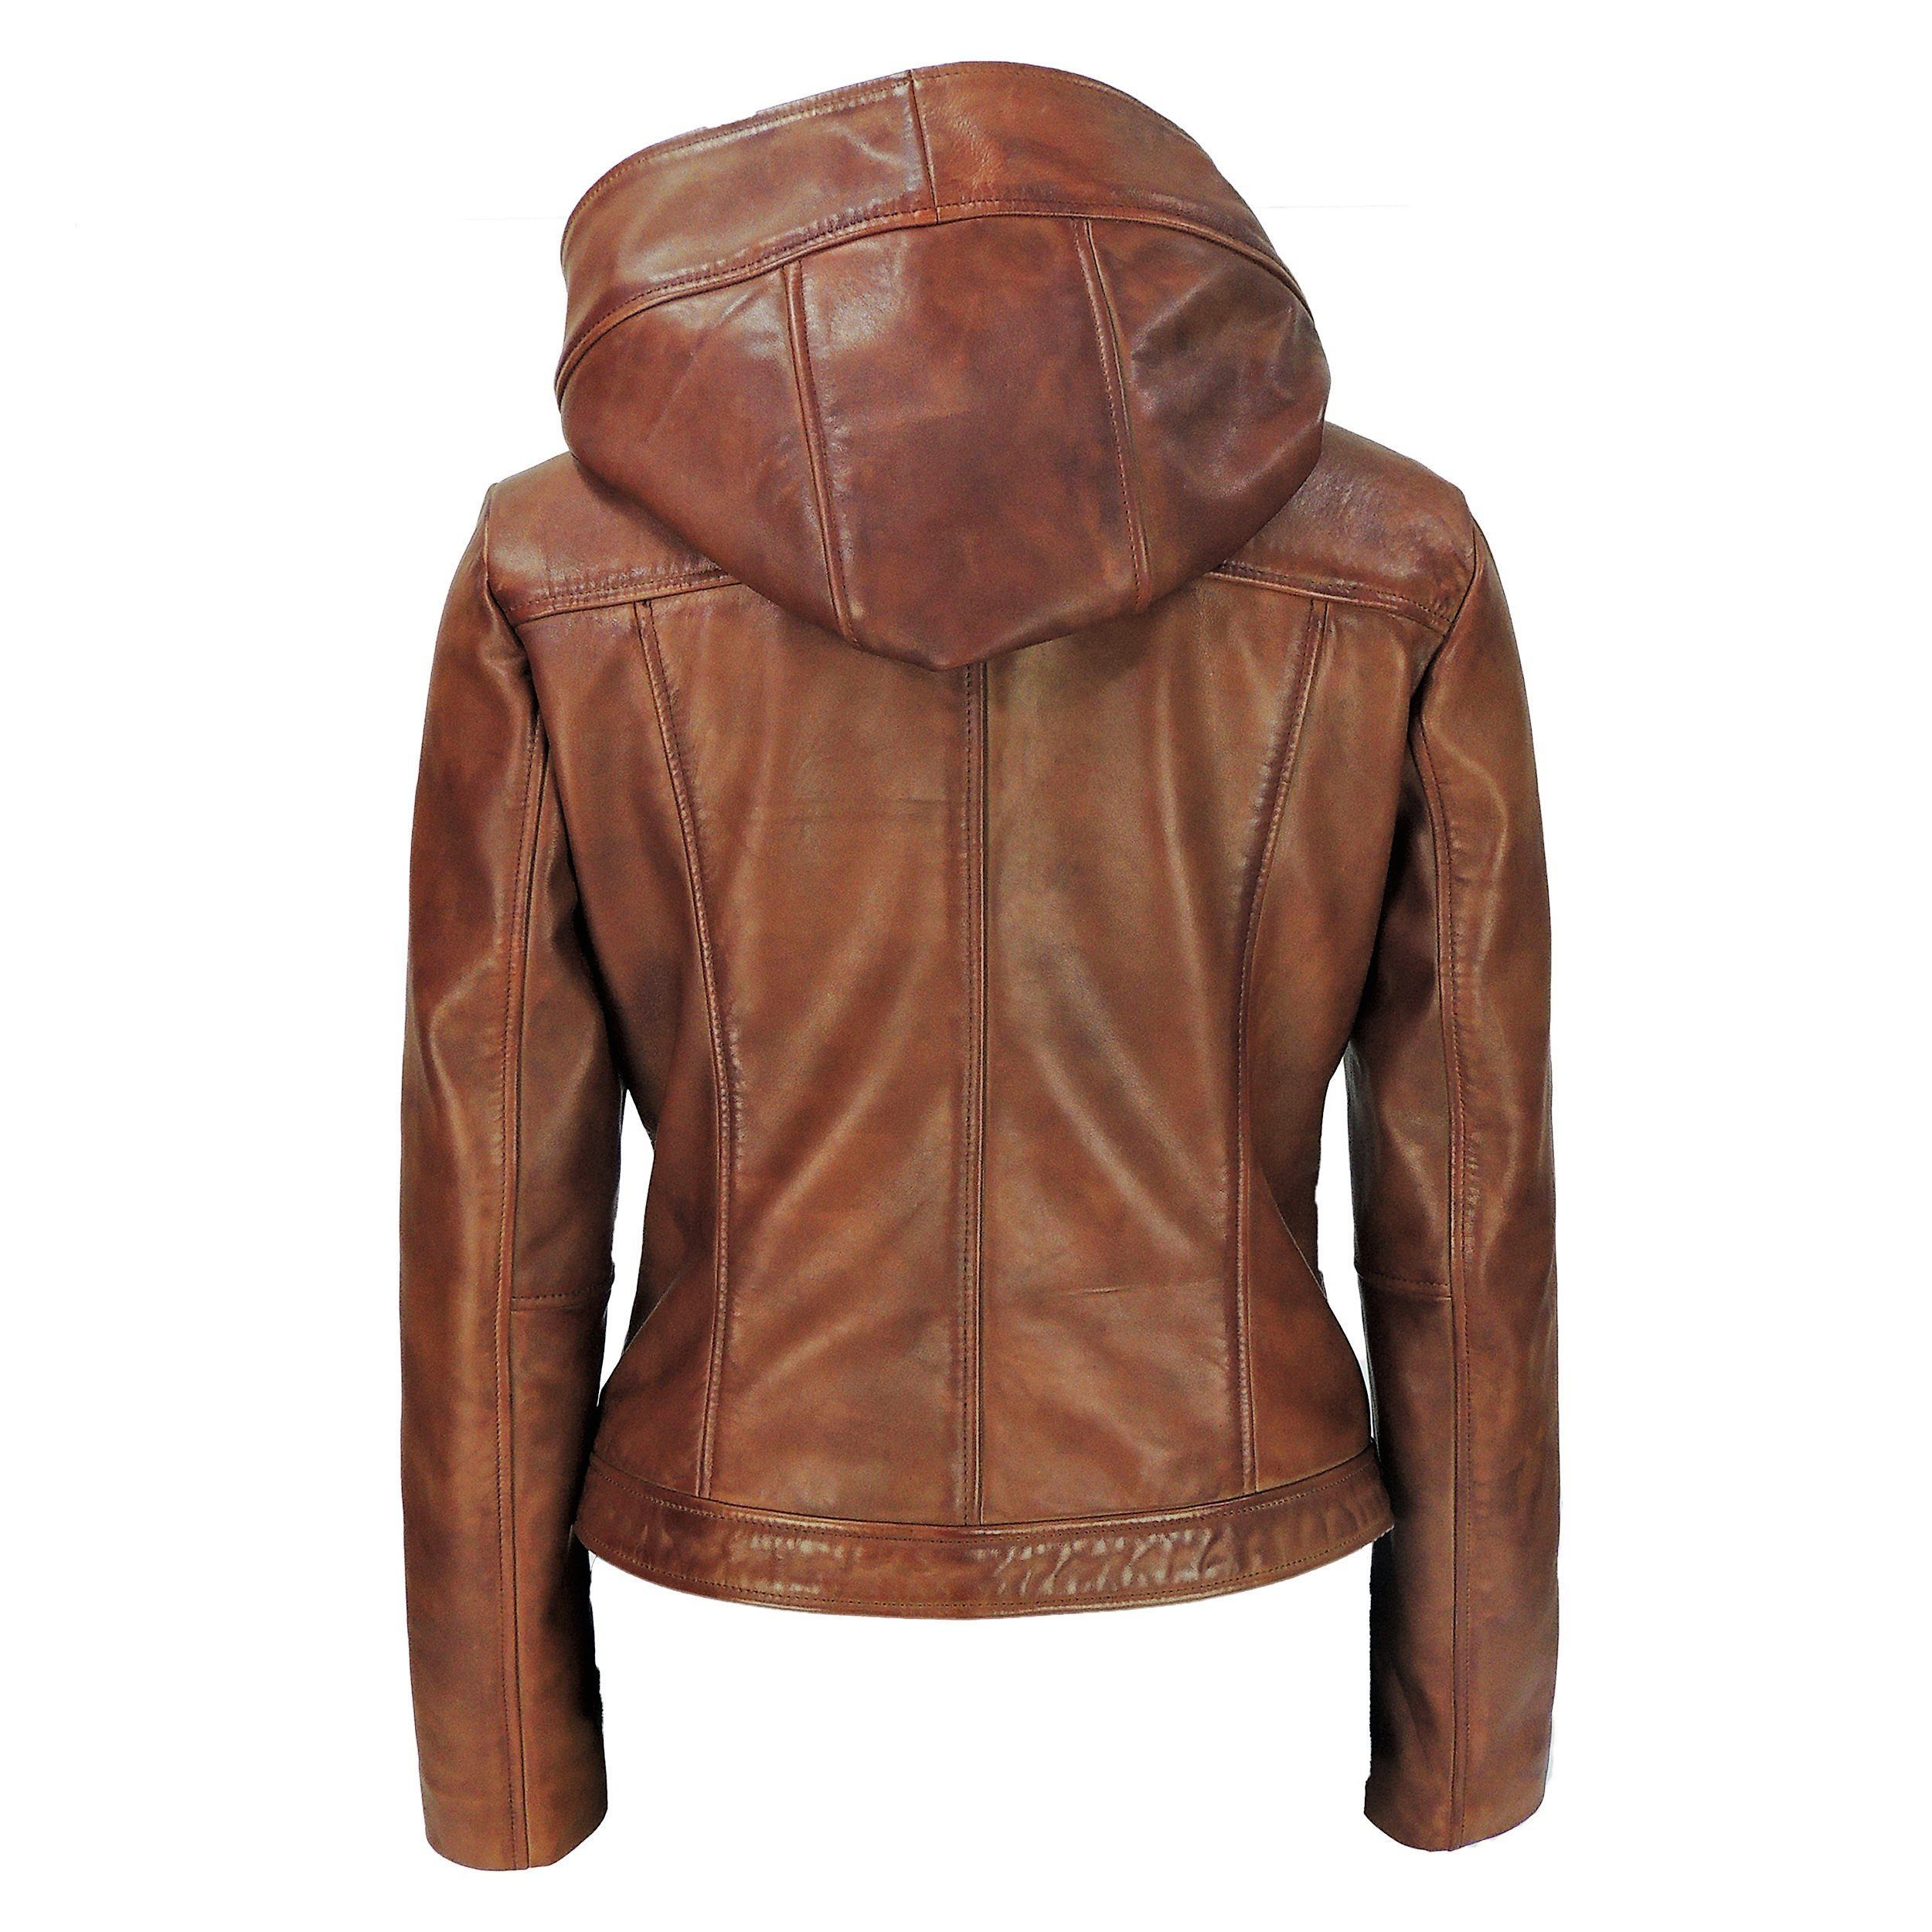 Womens Leather Jacket - Sasha High Fashion Womens Hooded Leather Jacket